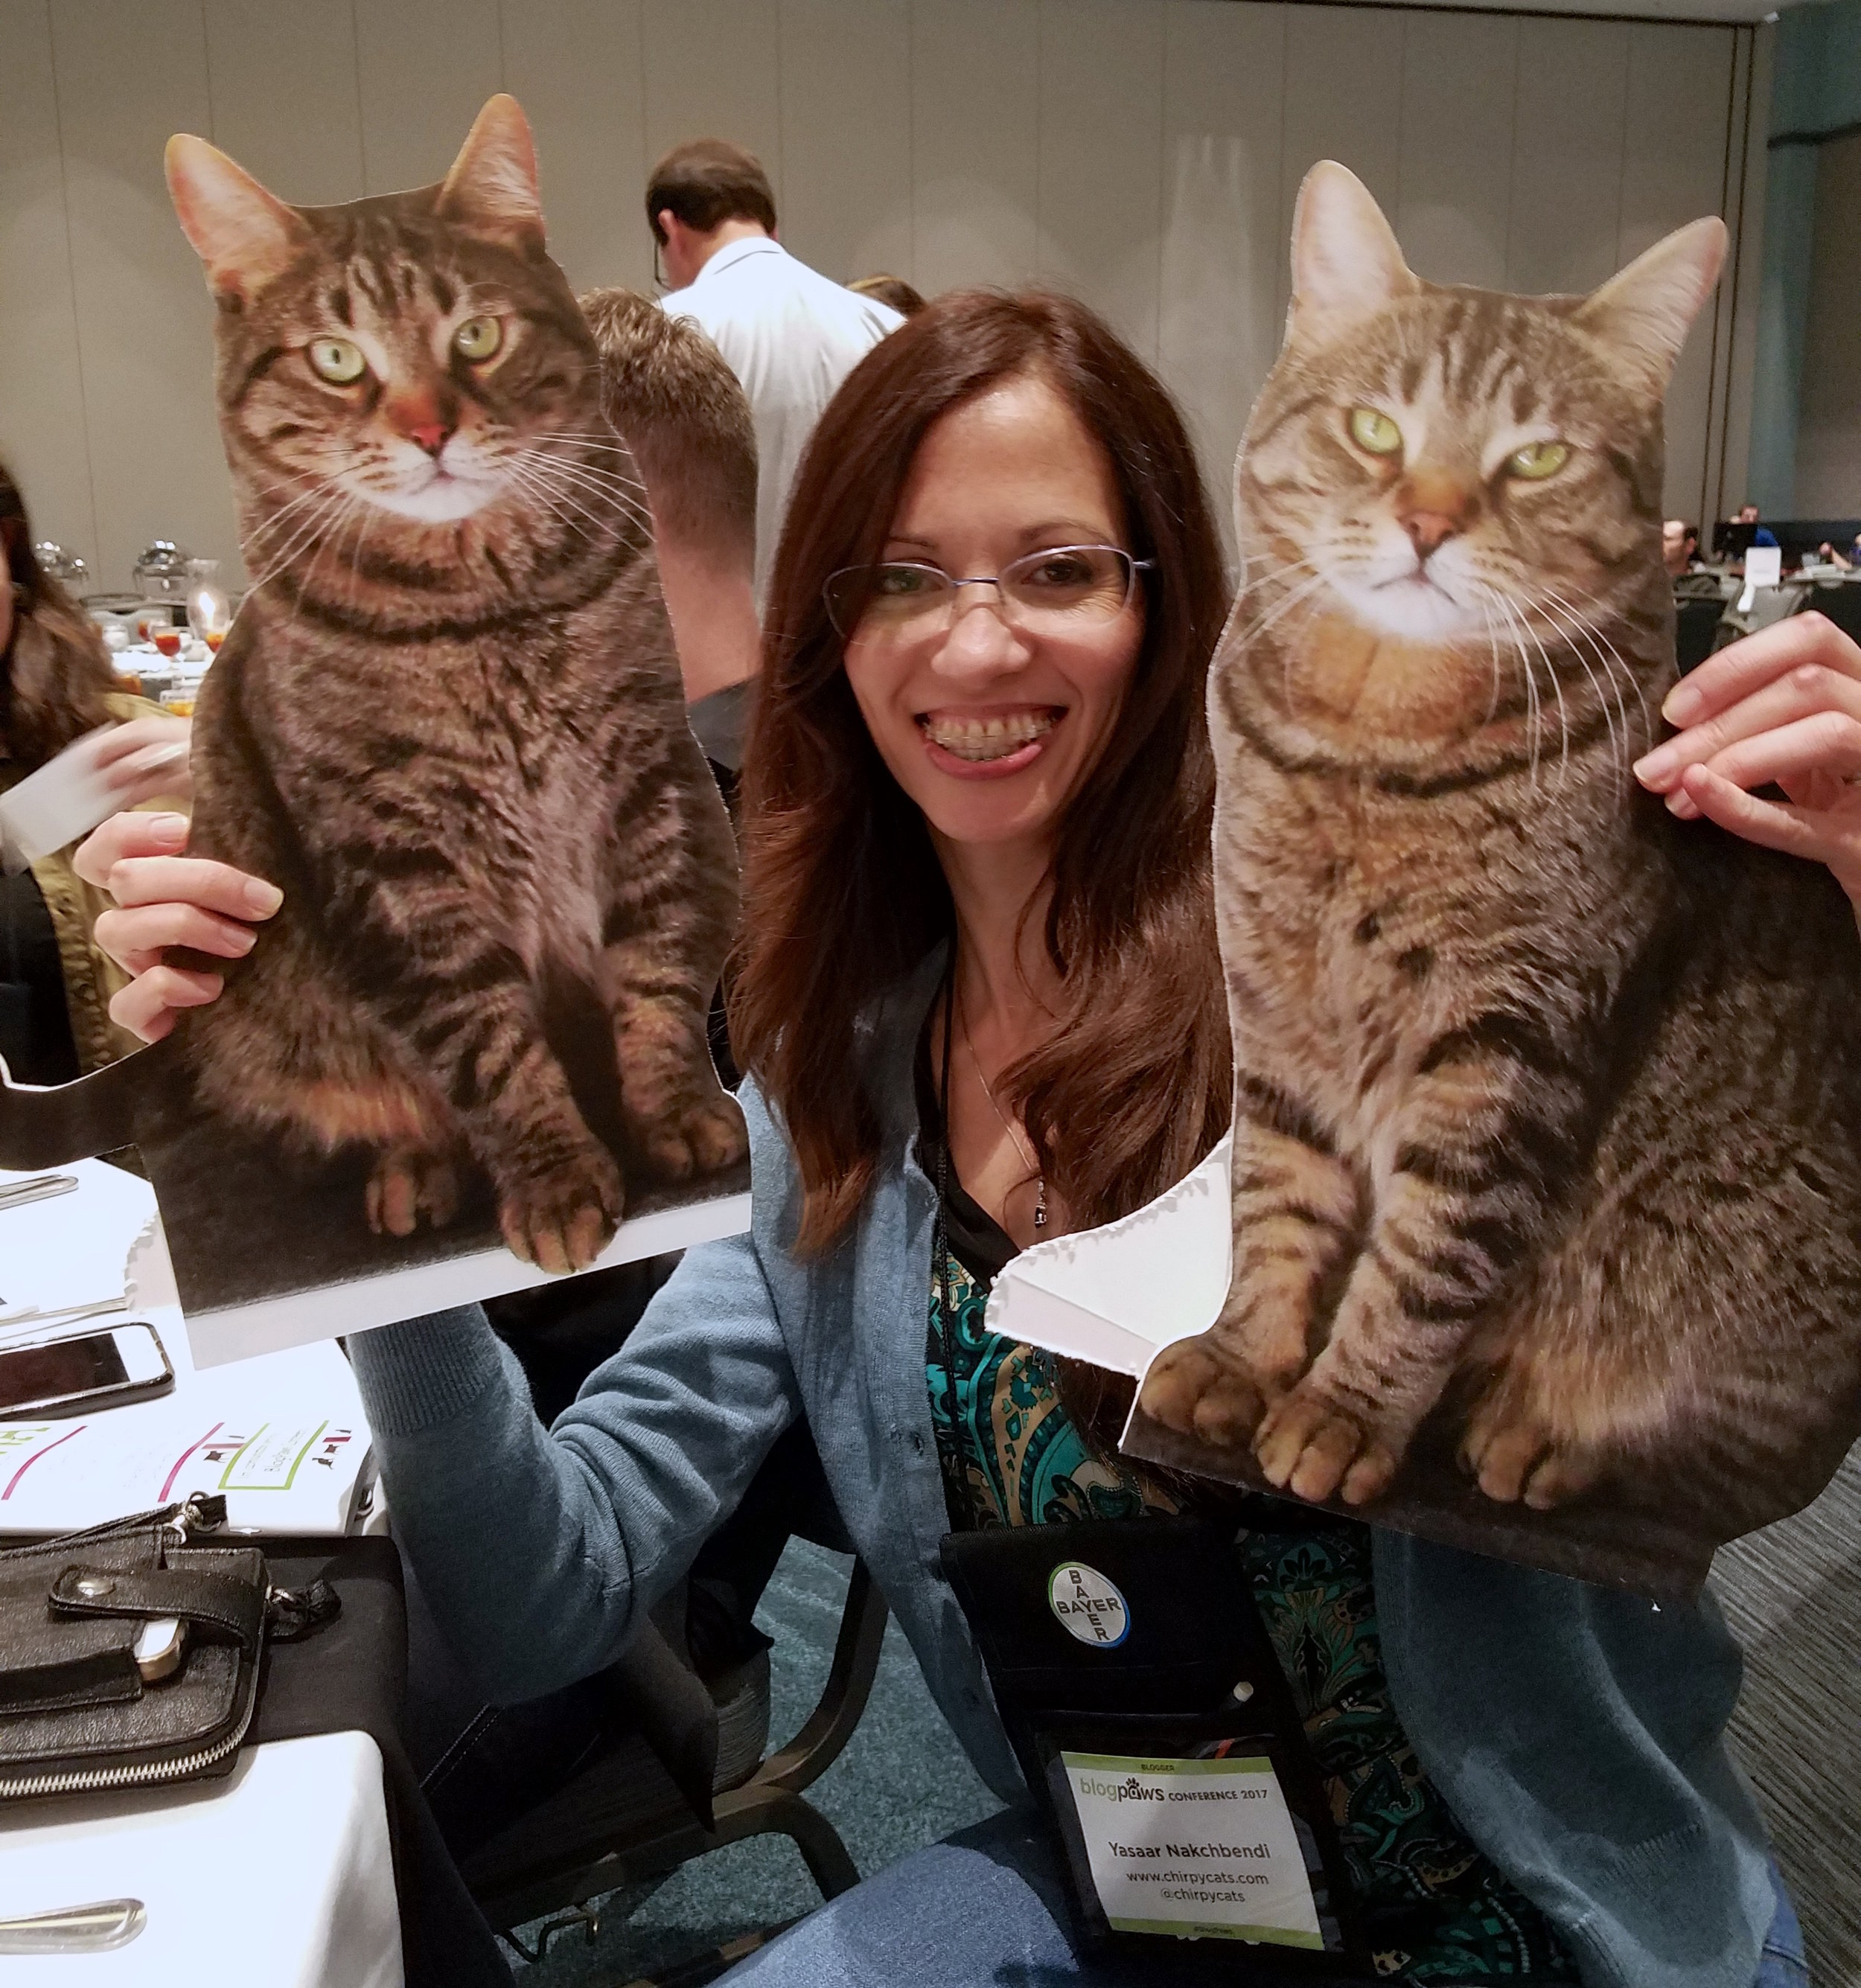 New friend Yasaar of ChirpyCats.com with her flat cats - 2 of 10 fur babies!